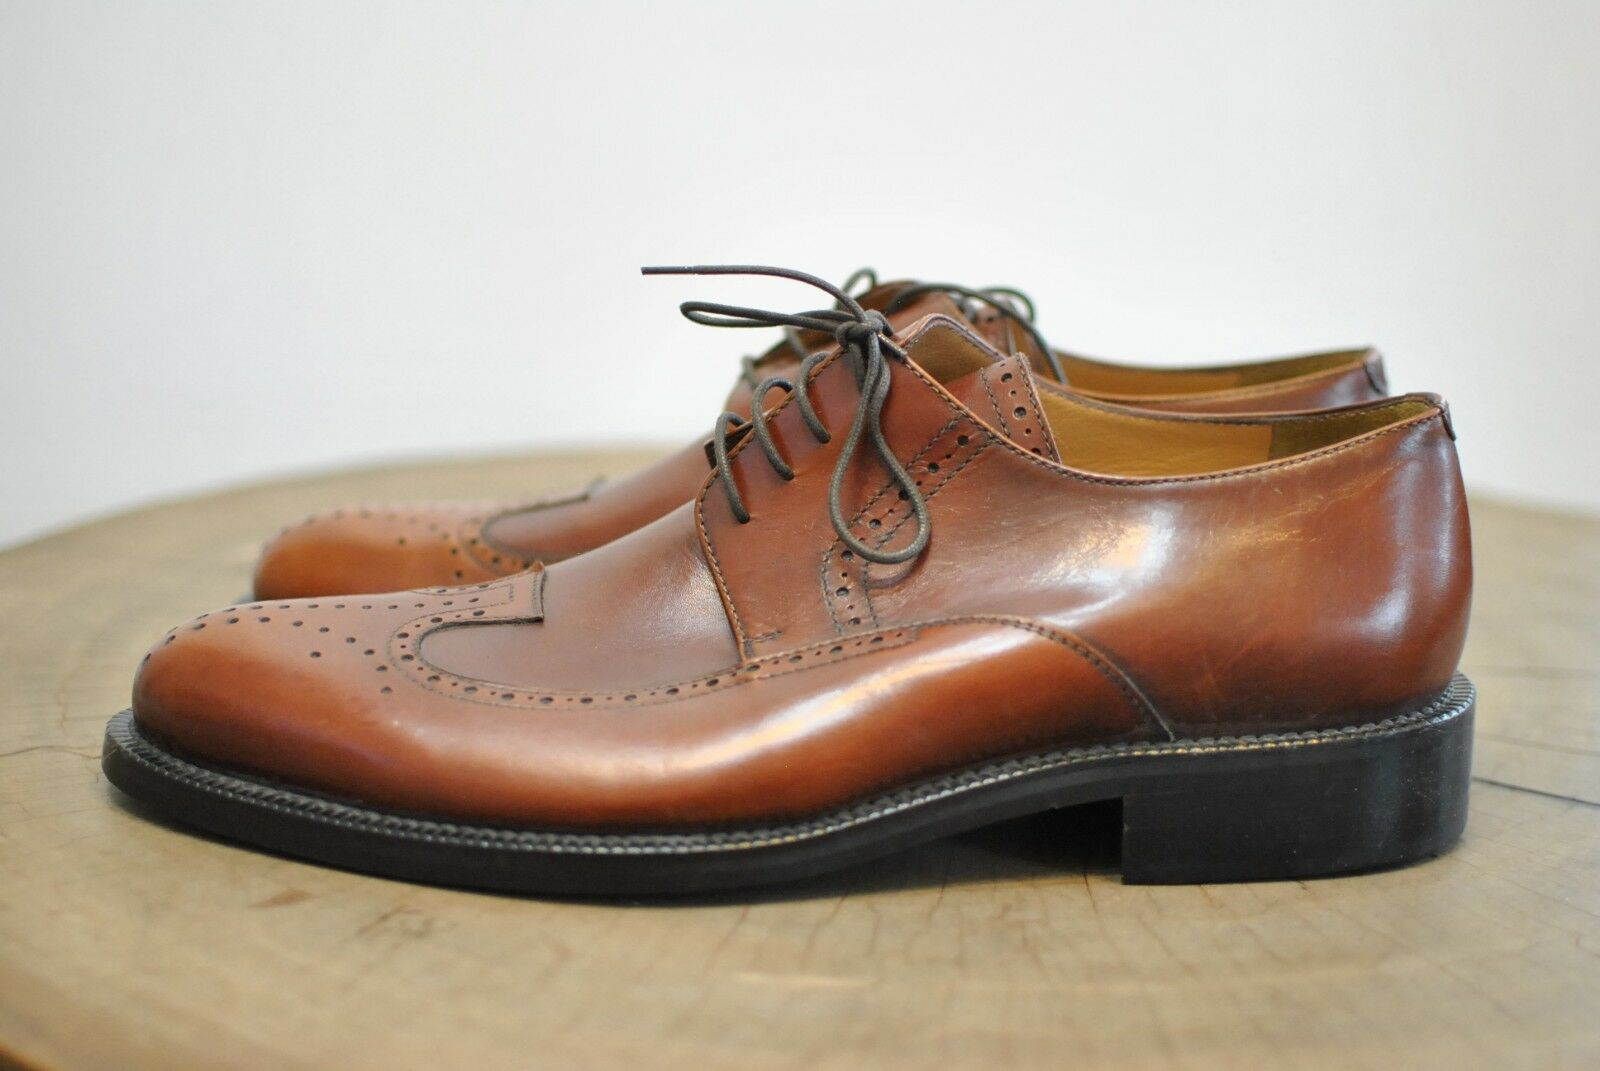 PAKERSON MEN'S LEATHER DRESS SHOES , HANDMADE IN ITALY SHOES.........(099)